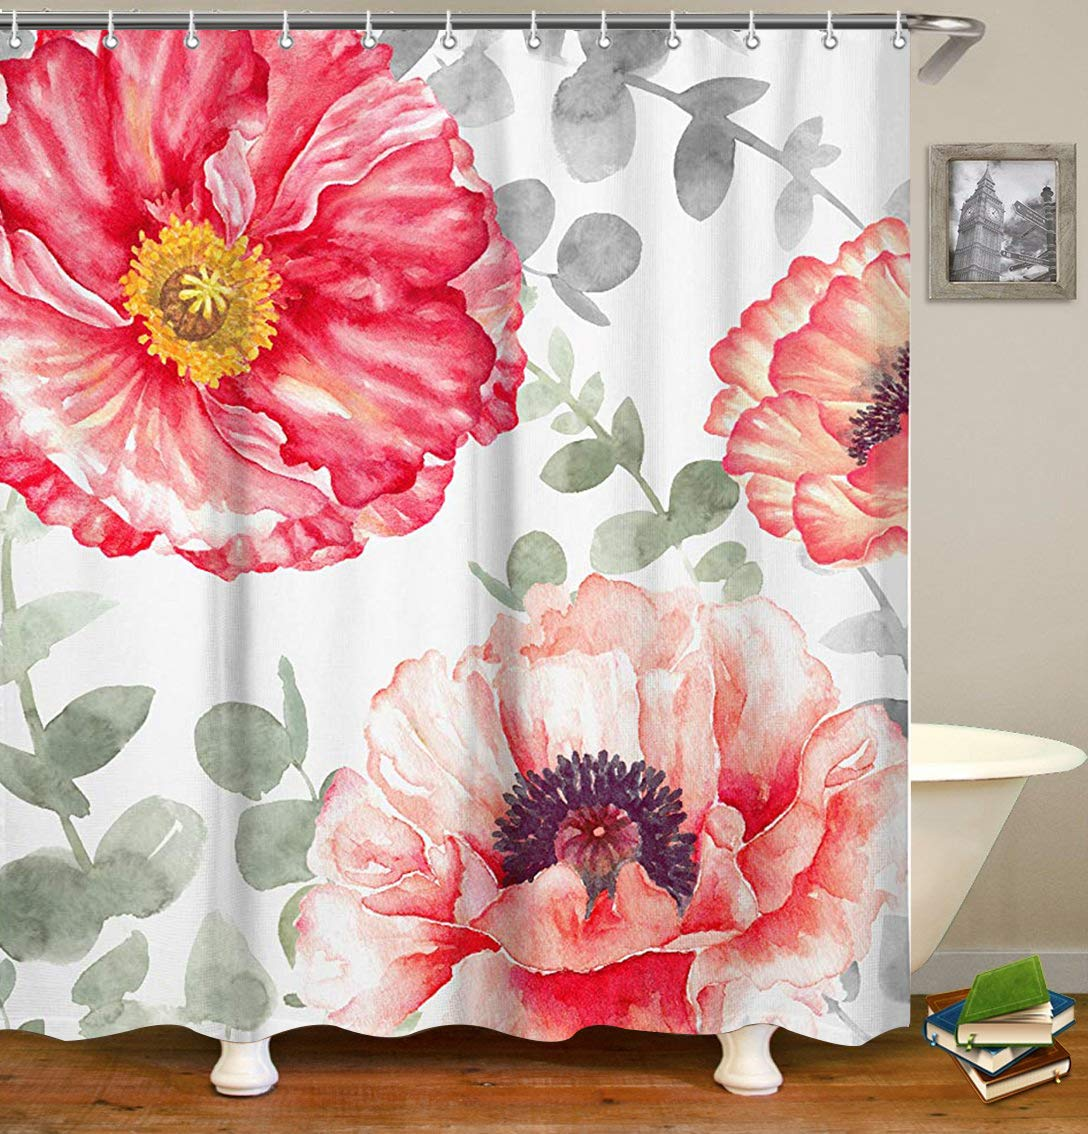 Livilan Peony Floral Fabric Shower Curtain Set 72'' x 72'' Decorative Waterproof Quick Dry Thick Polyester Fabric Bathroom Curtain, Gray Red by Livilan